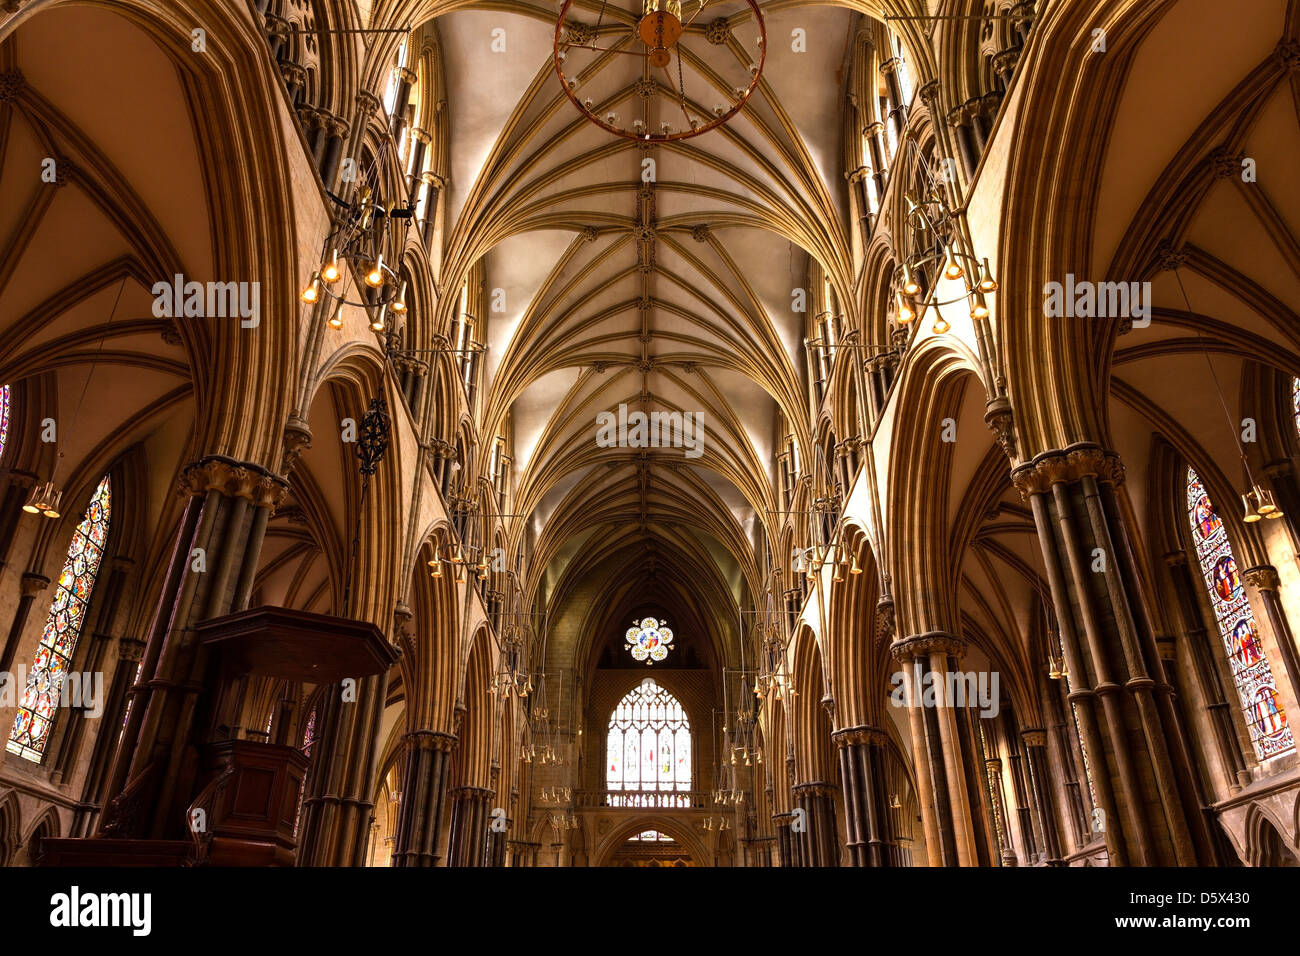 Pointed Gothic Masonry Arches Stone Pillars And Vaulted Ceilings Above The Nave Of Lincoln Cathedral Lincolnshire England UK